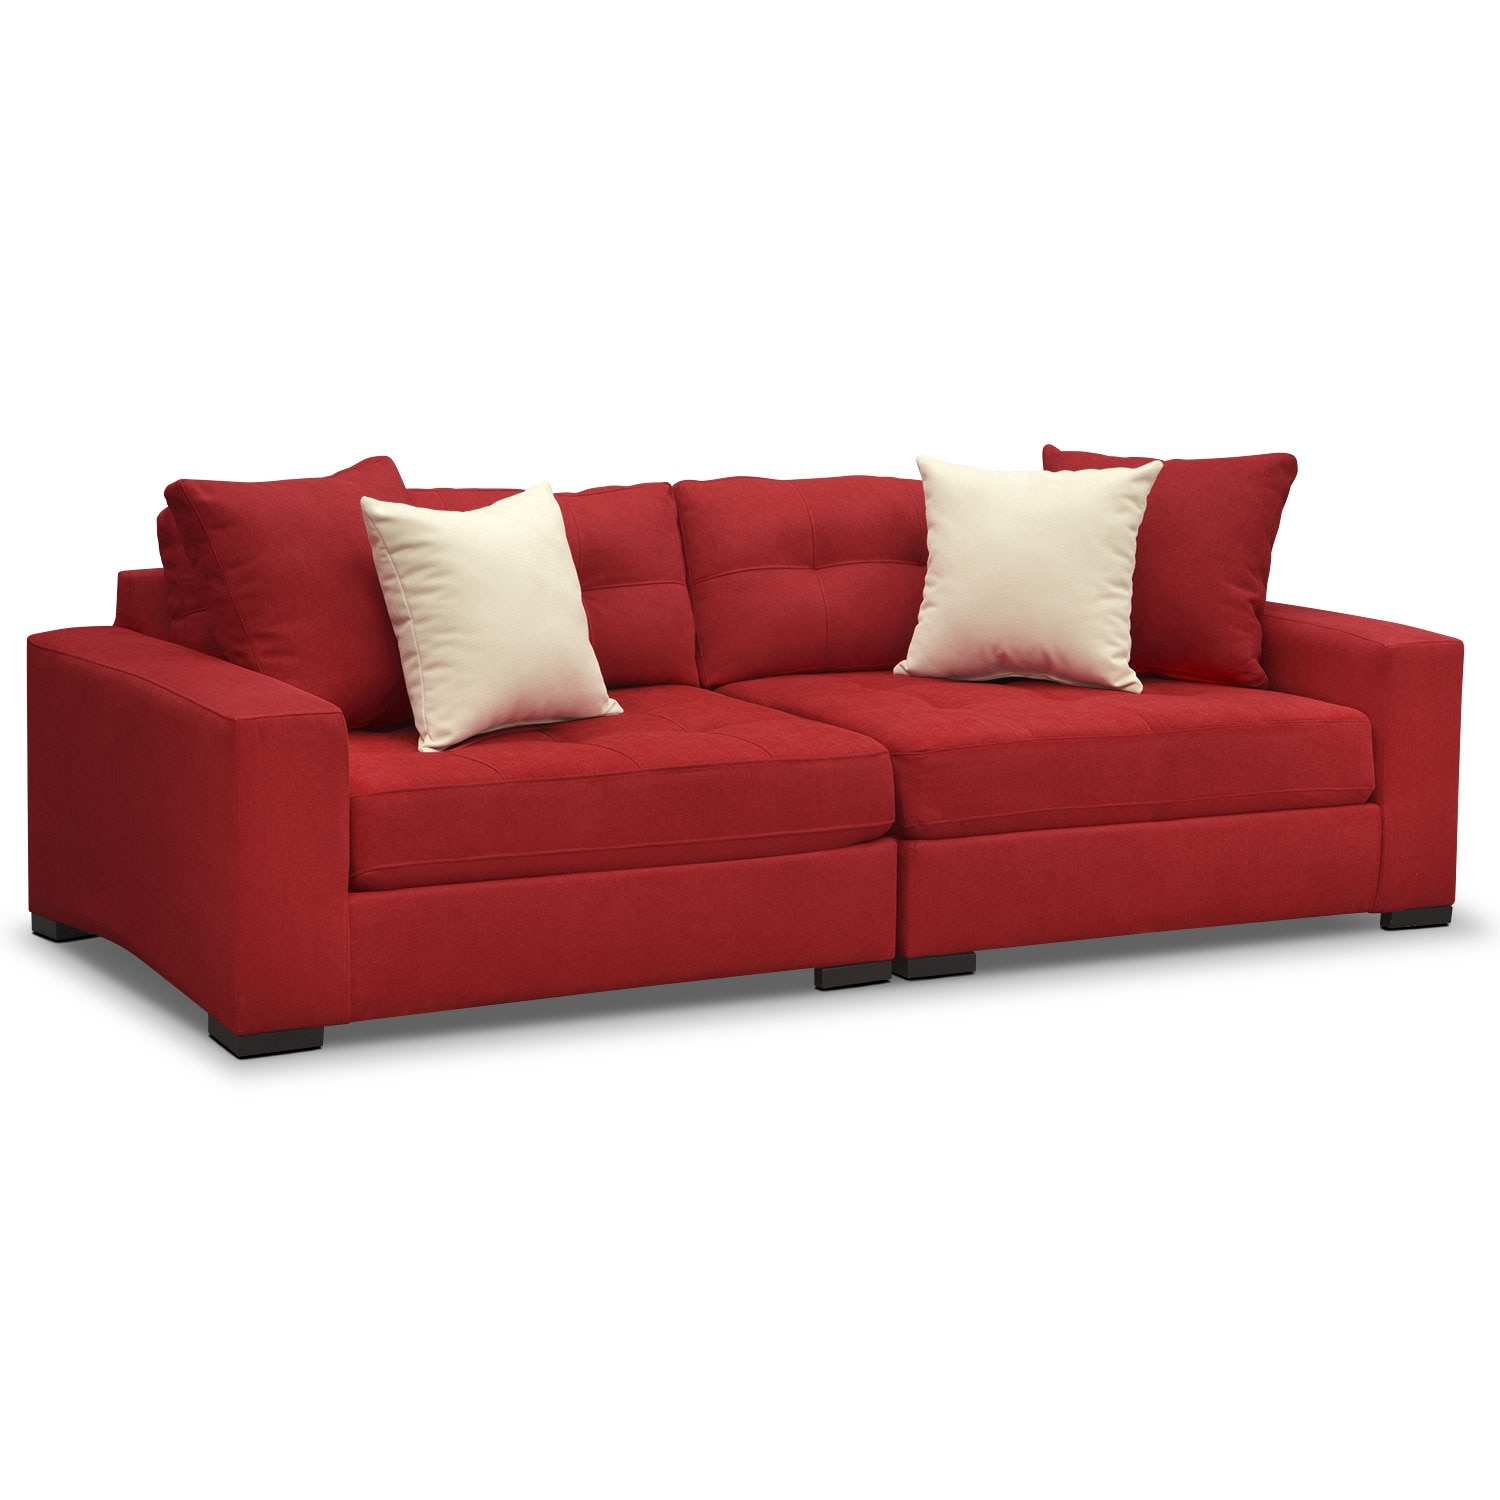 living room modular furniture venti modular sofa american signature furniture 16969